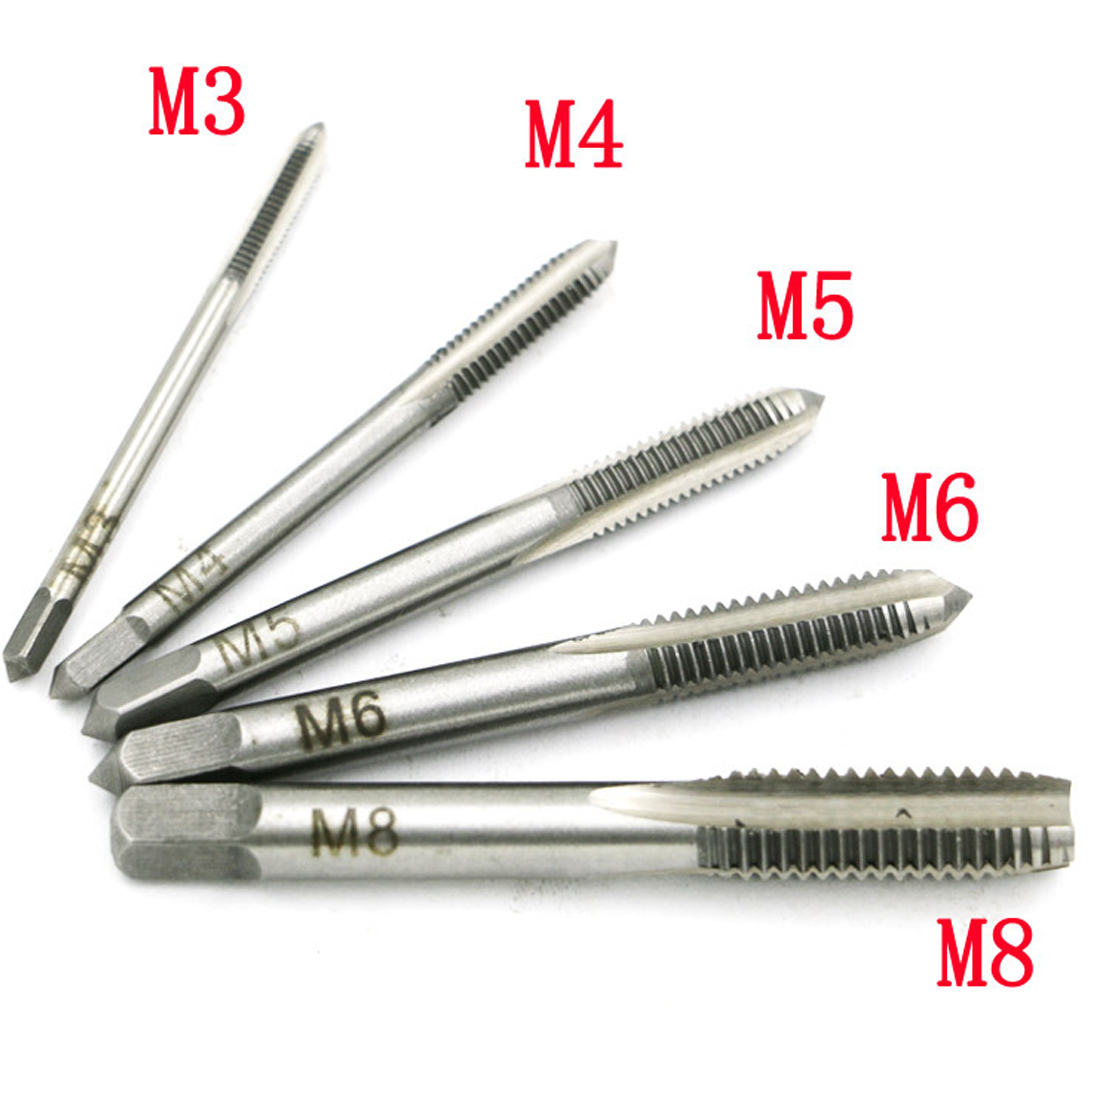 Screw Thread Hand Tap Drill 5PCS/Set M3 M4 M5 M6 M8 Ball bearing steel Tool Screw Thread Hand Tap Drill screw moving смартфон micromax canvas juice 4 q465 gold quad core 1 3 ghz 5 hd ips 1280 720 2 gb 16 gb 8mpx 5mpx 4g 3900mah 2 sim android 5 1